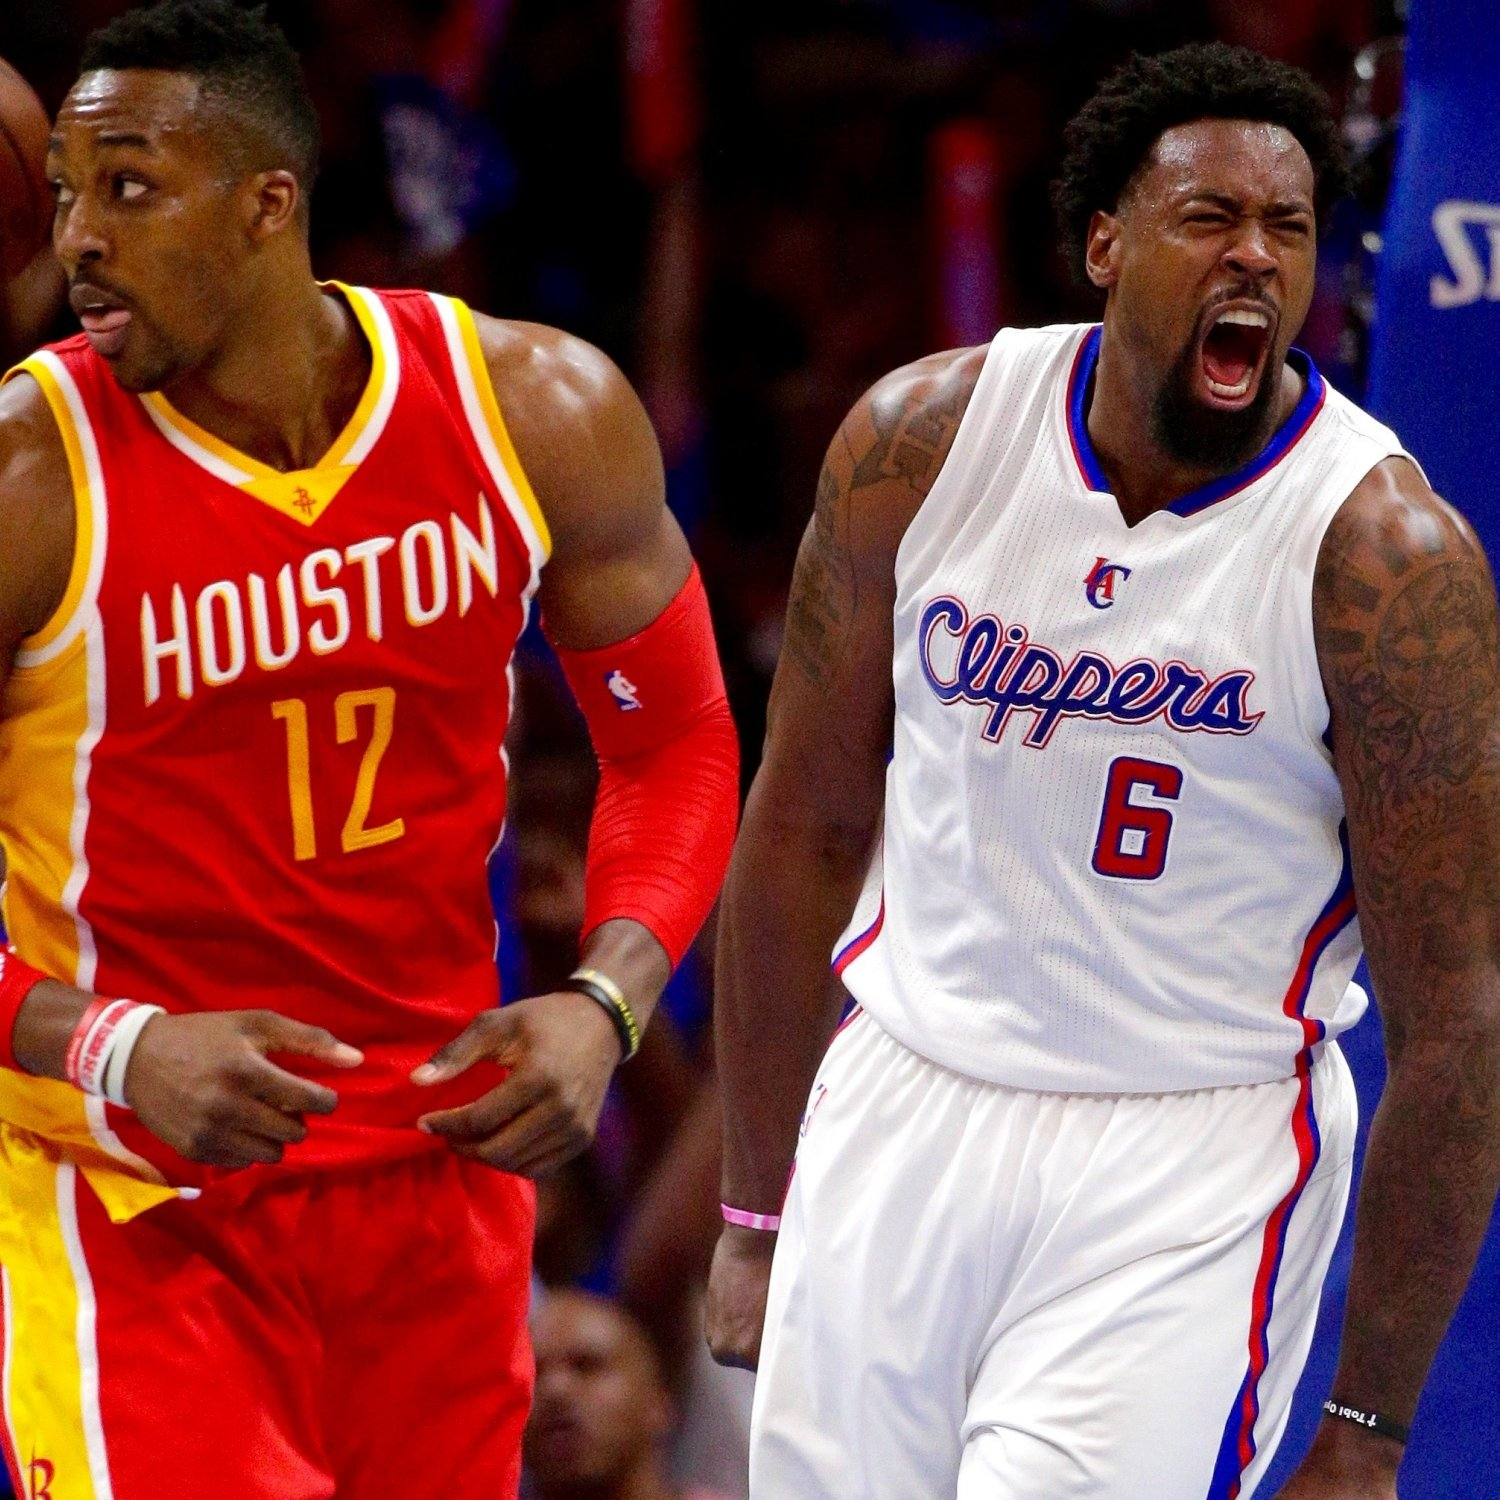 Rockets Vs Warriors Game 3 Live Stream Free Online: Houston Rockets Vs. Los Angeles Clippers: Live Score And